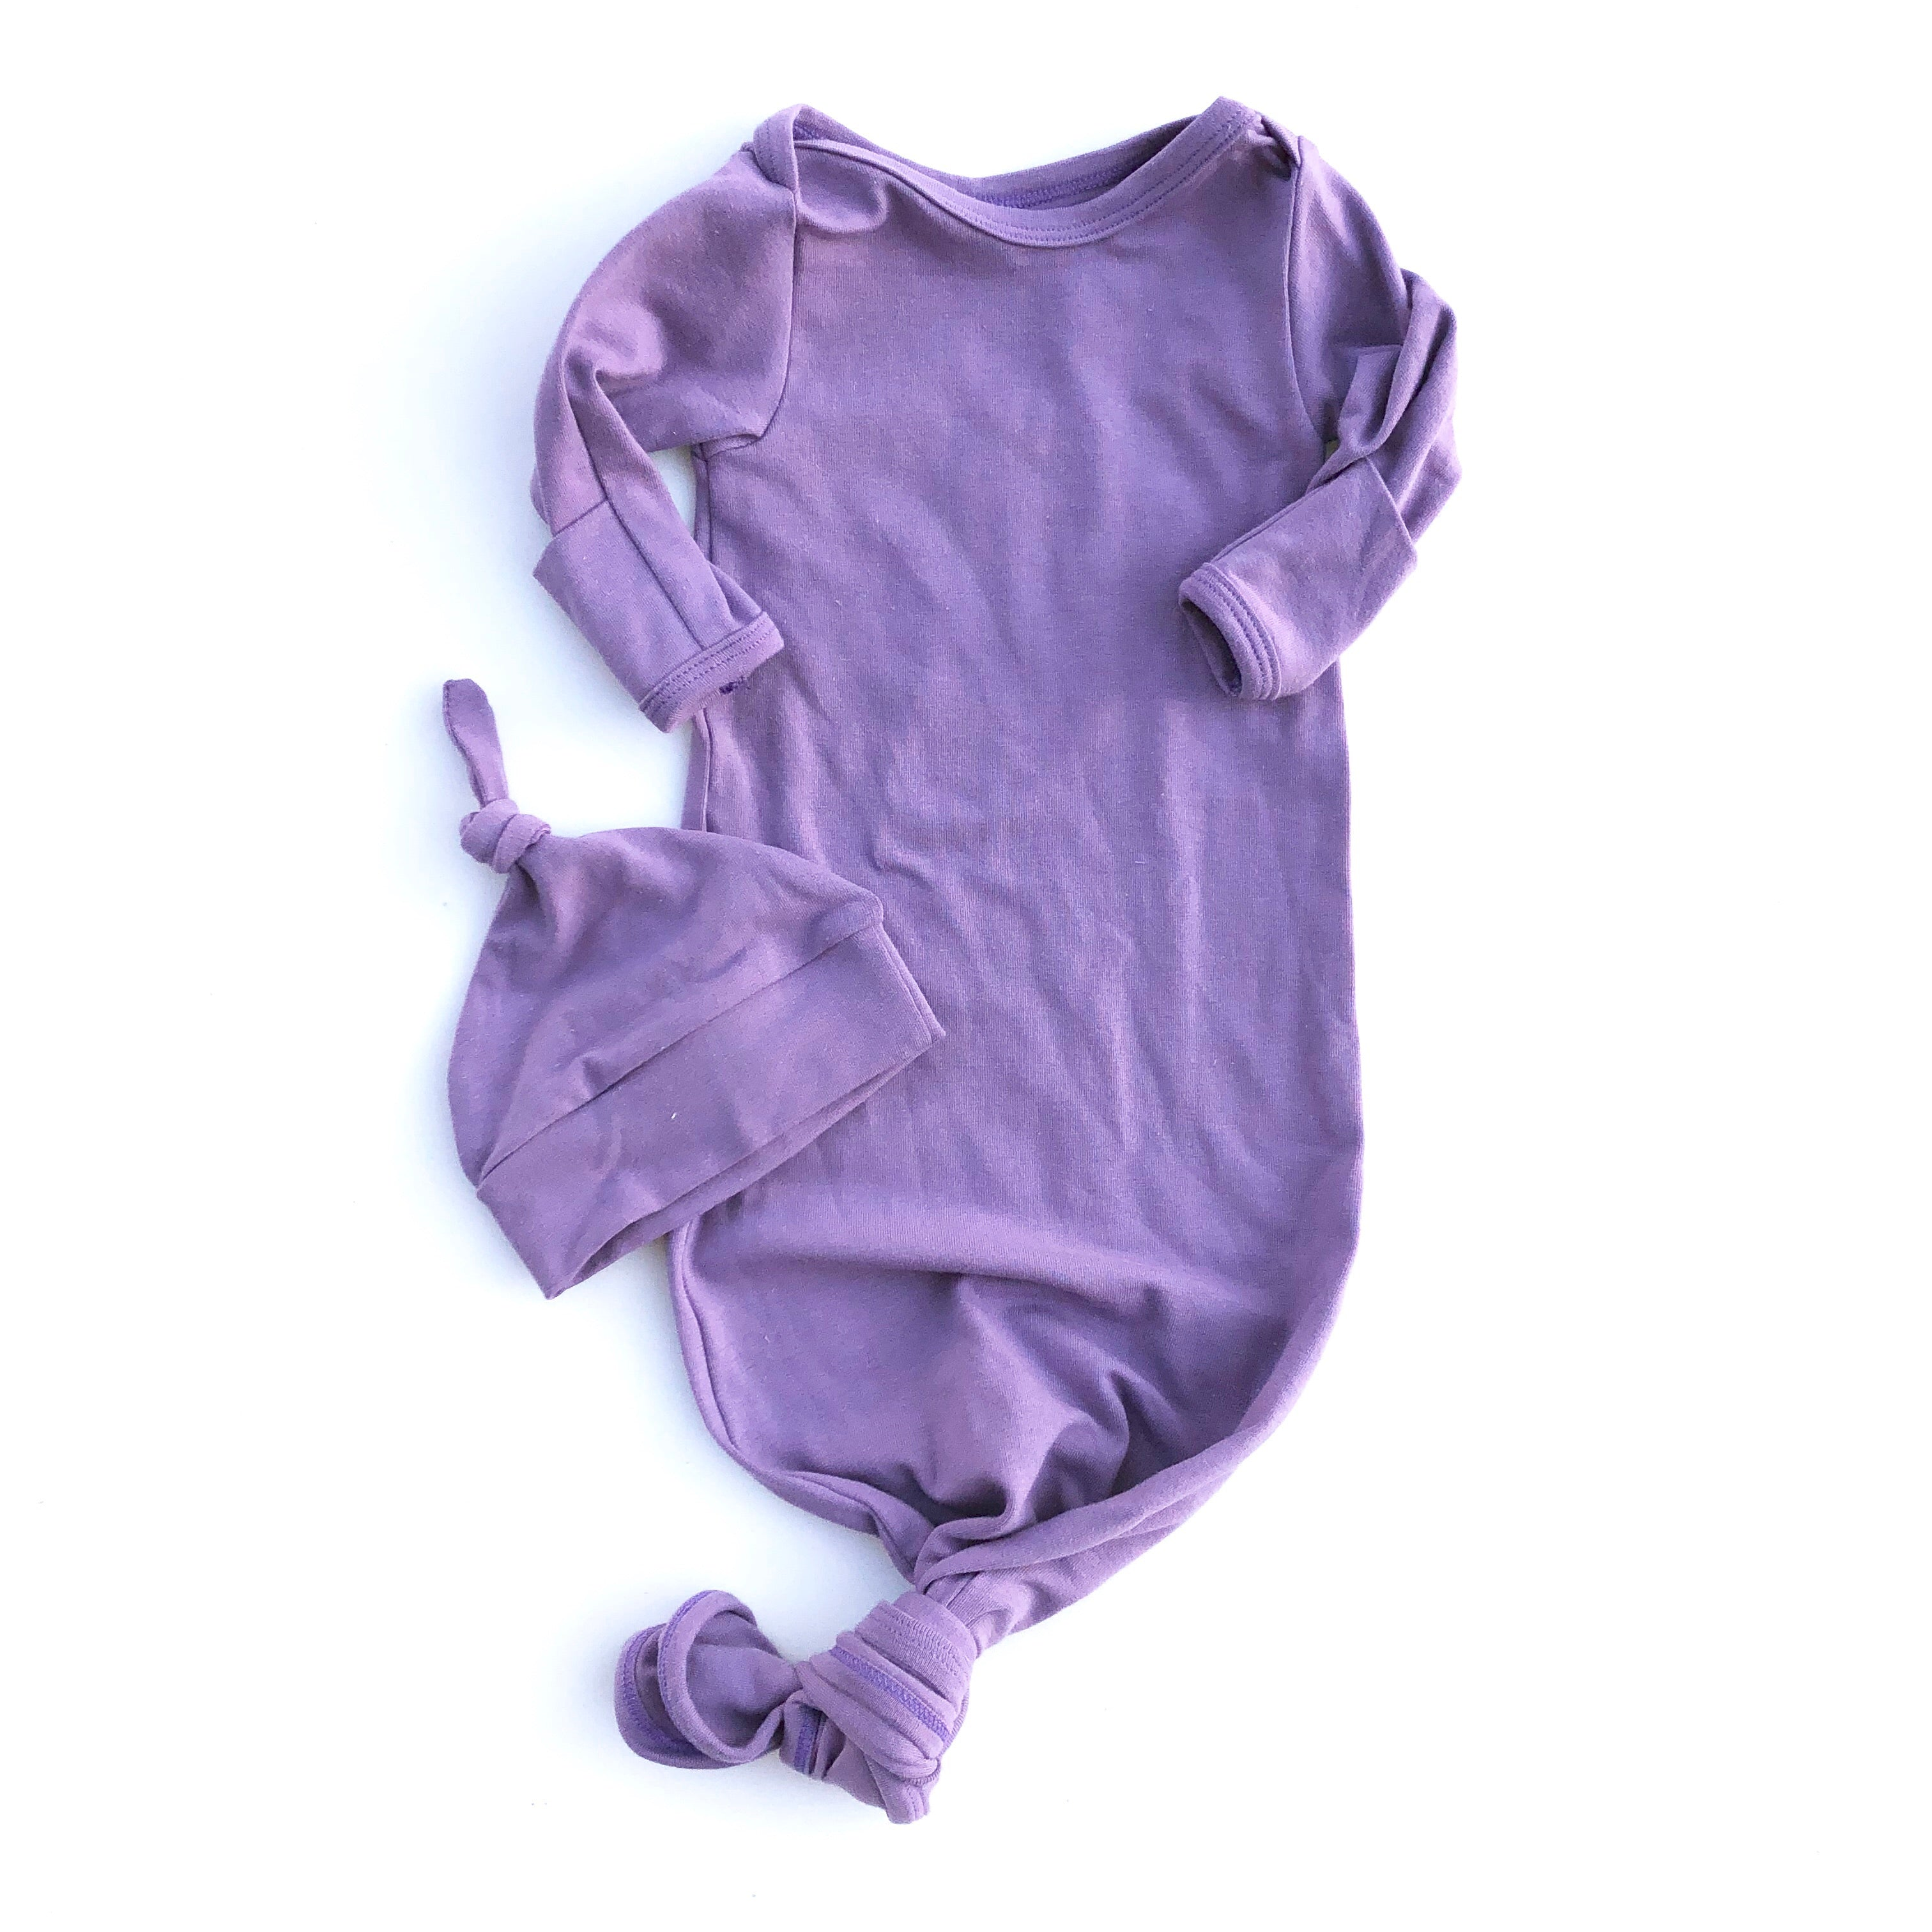 Dark Lavender Knotted Bottom Baby Layette Gown